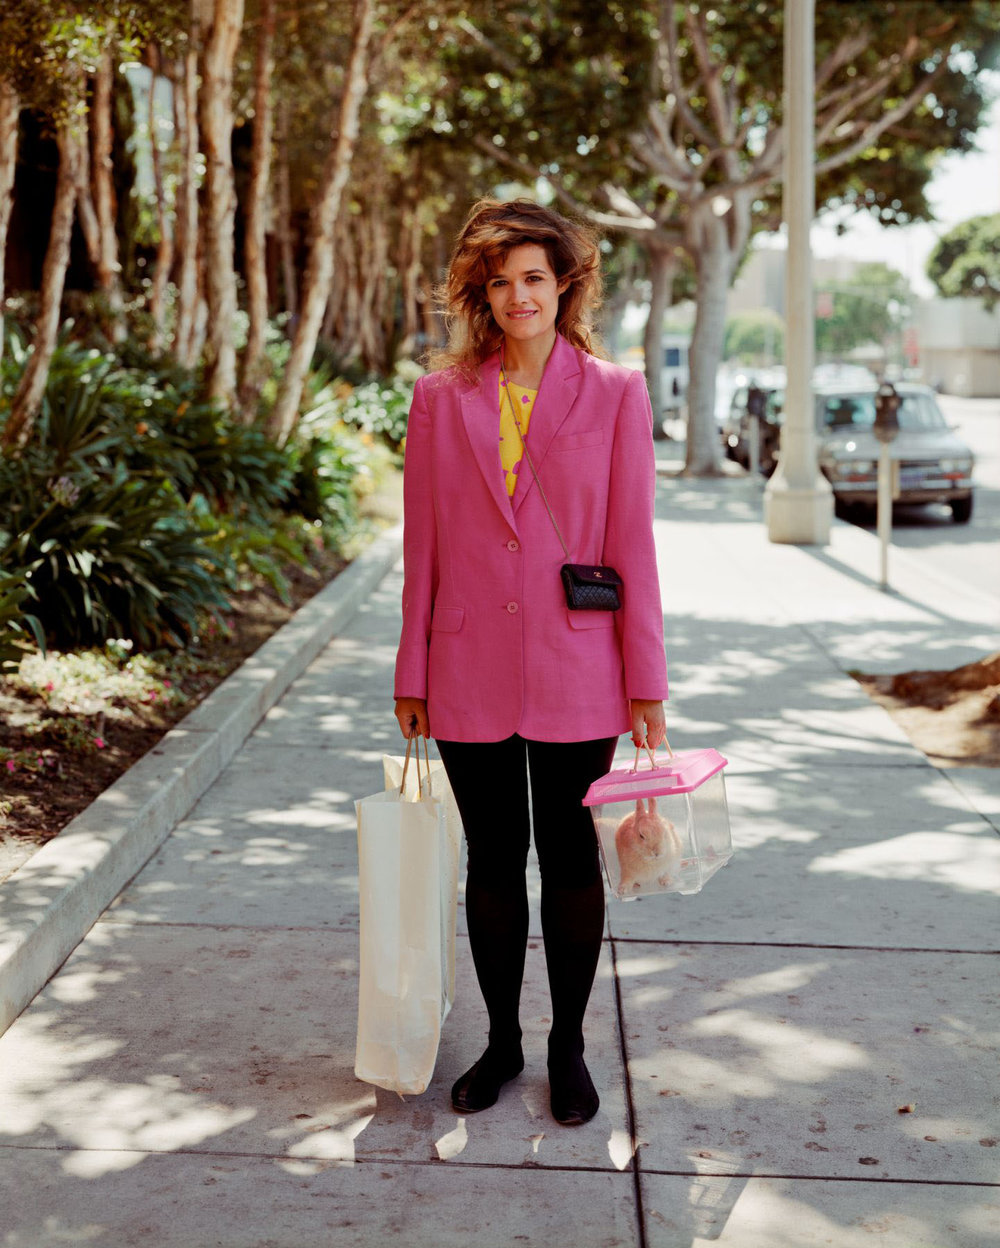 A Woman Out Shopping with Her Pet Rabbit, Santa Monica, California, August 1987